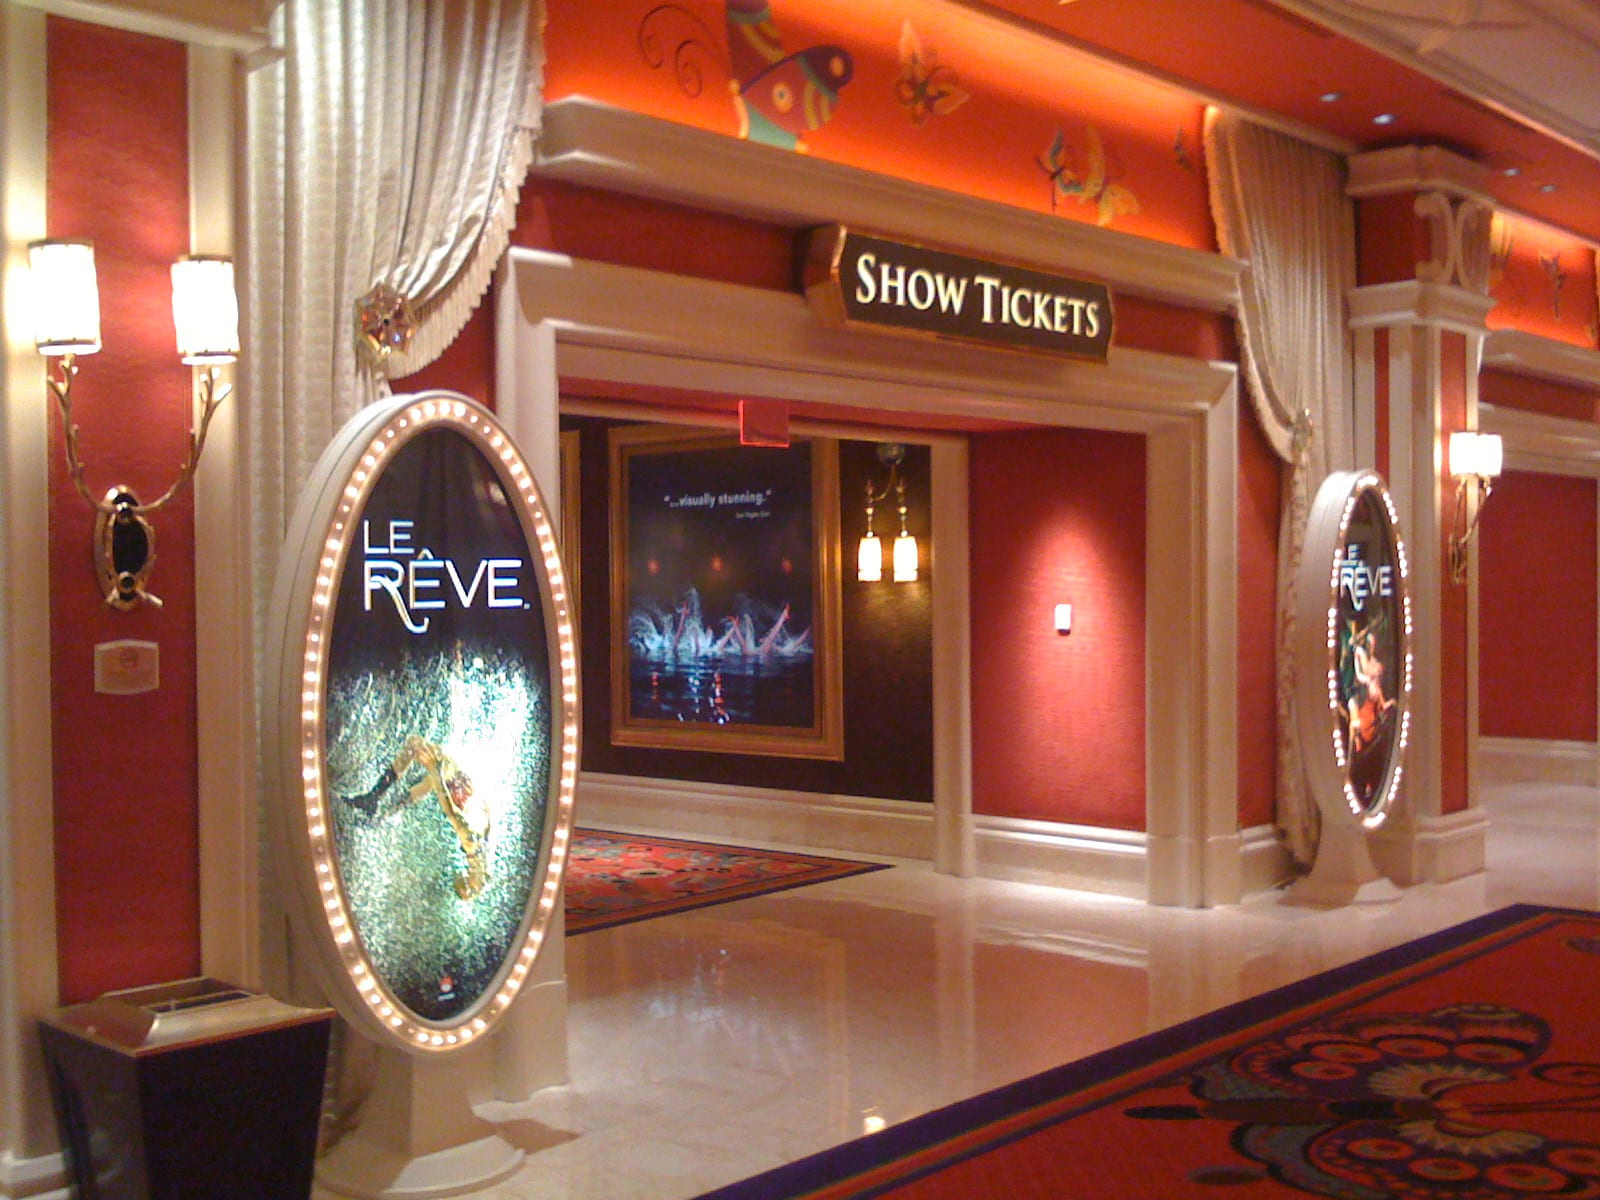 Billboards for Le Reve at the Wynn Las Vegas